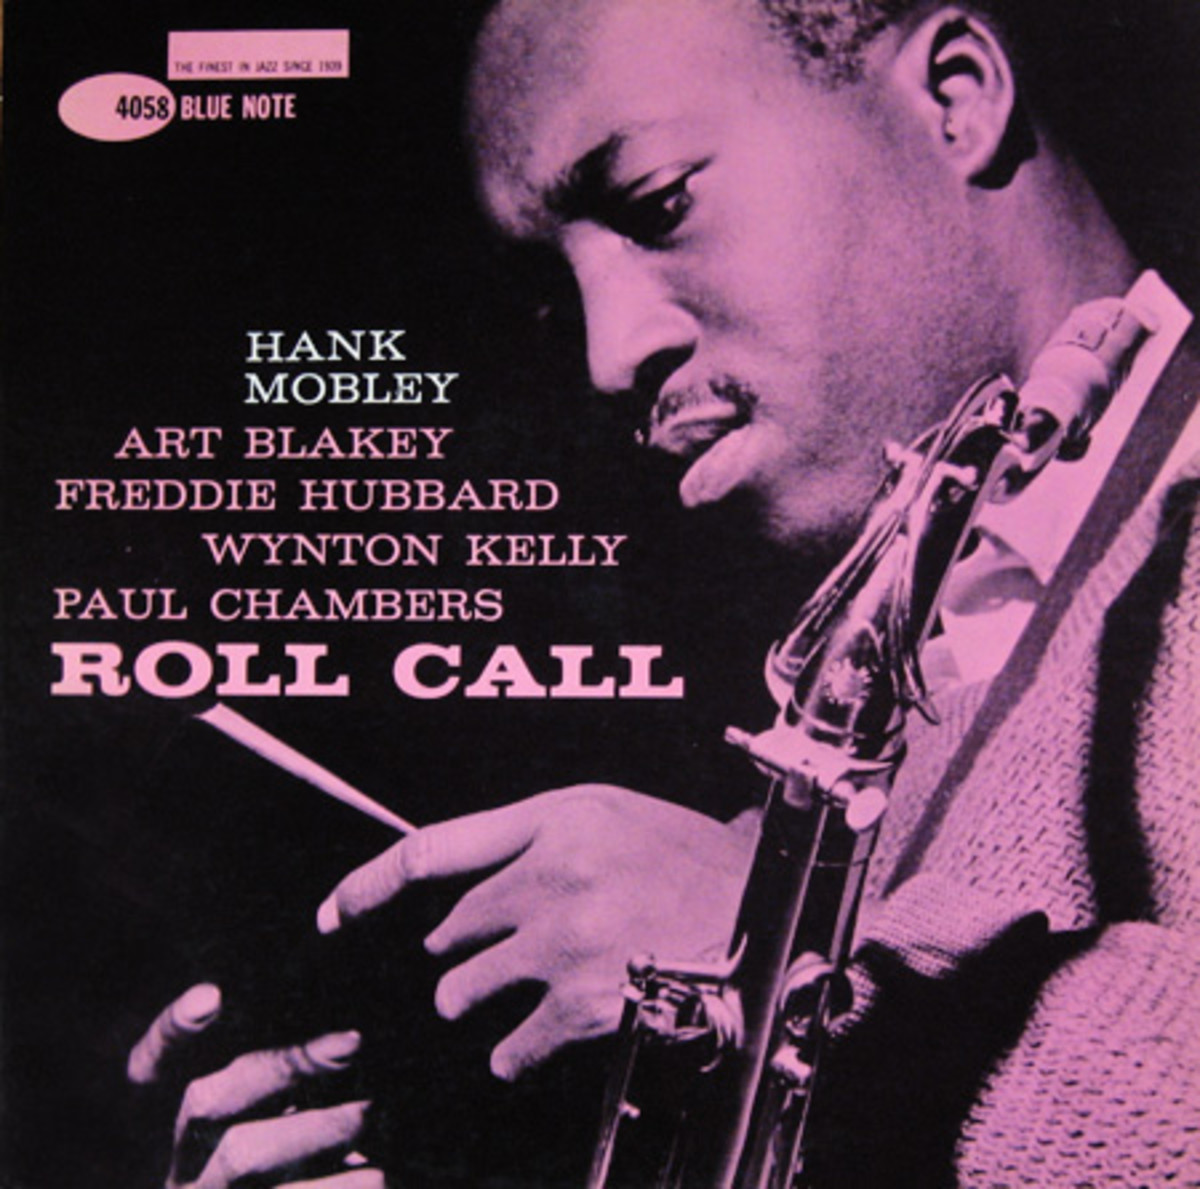 "Hank Mobley ""Roll Call"" Blue Note Records 4058 12"" LP Vinyl Record (1961) Album Cover Design by Reid Miles, Photo by Francis Wolff"